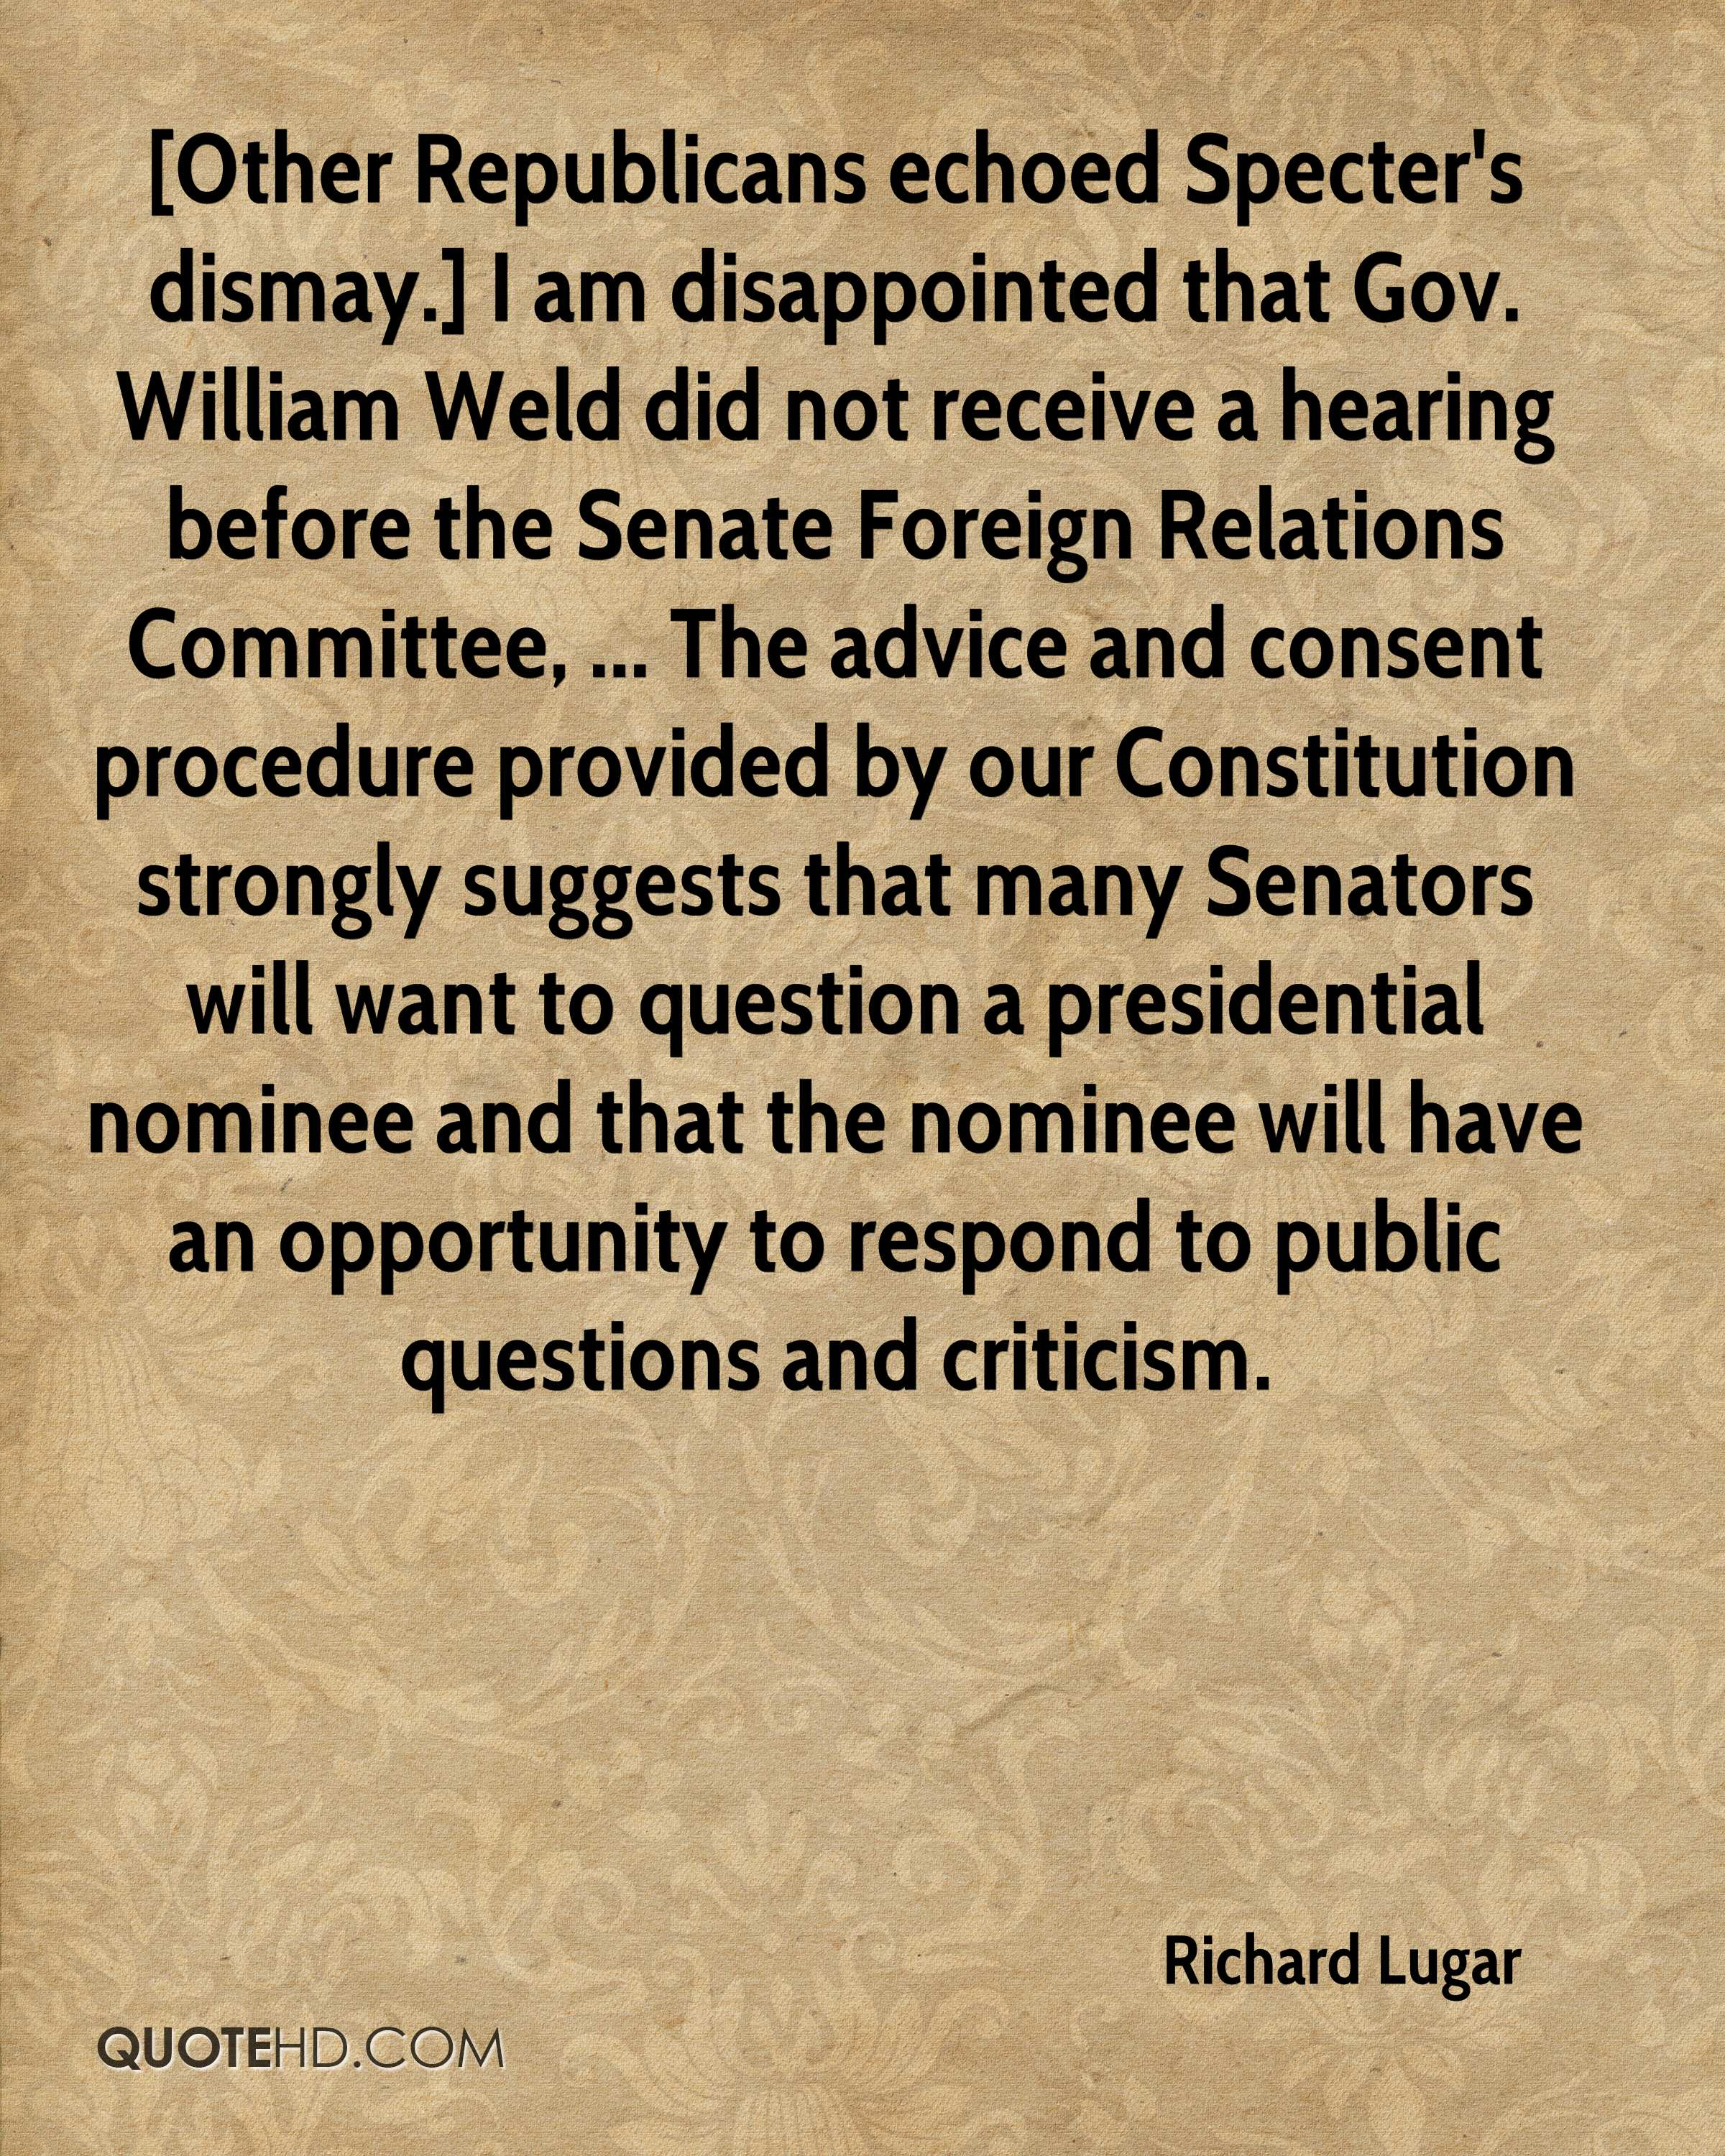 [Other Republicans echoed Specter's dismay.] I am disappointed that Gov. William Weld did not receive a hearing before the Senate Foreign Relations Committee, ... The advice and consent procedure provided by our Constitution strongly suggests that many Senators will want to question a presidential nominee and that the nominee will have an opportunity to respond to public questions and criticism.